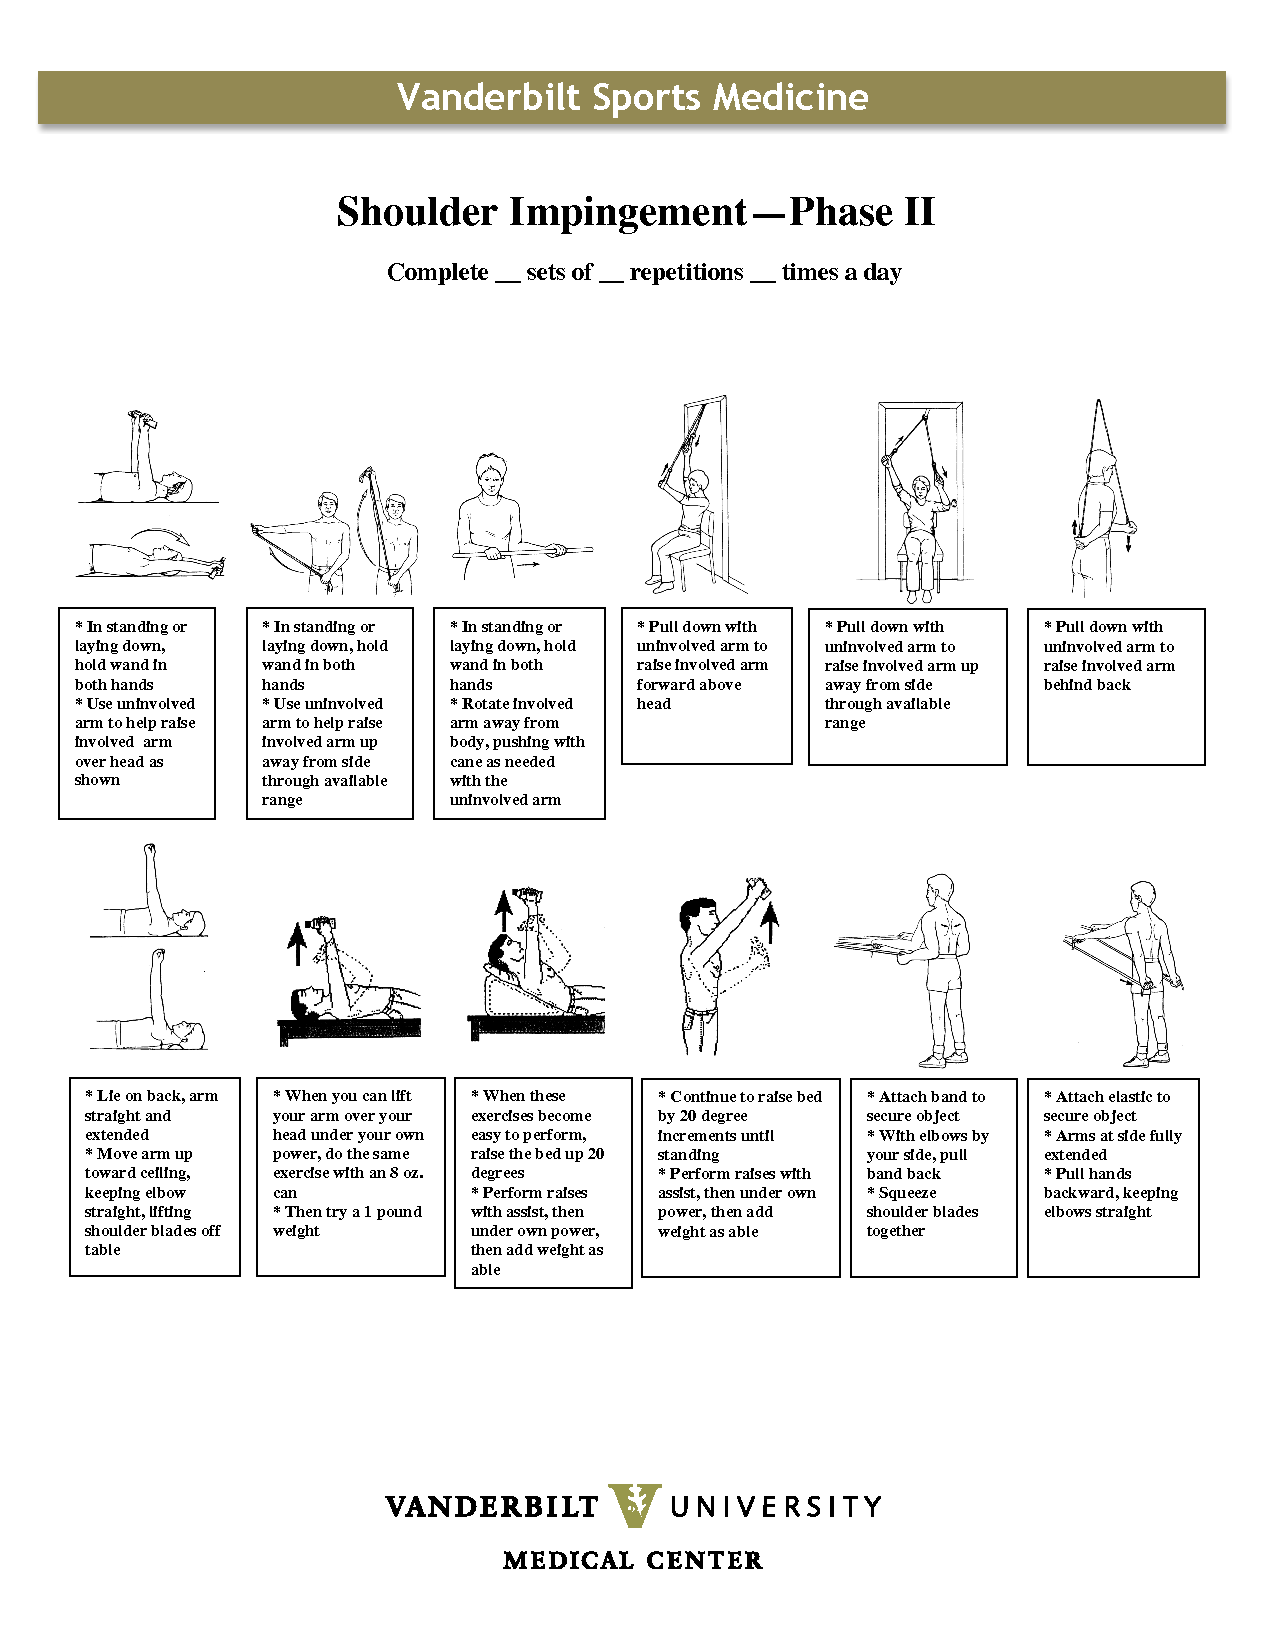 Thoracic Outlet Syndrome Exercises Pdf | www.imgkid.com ...